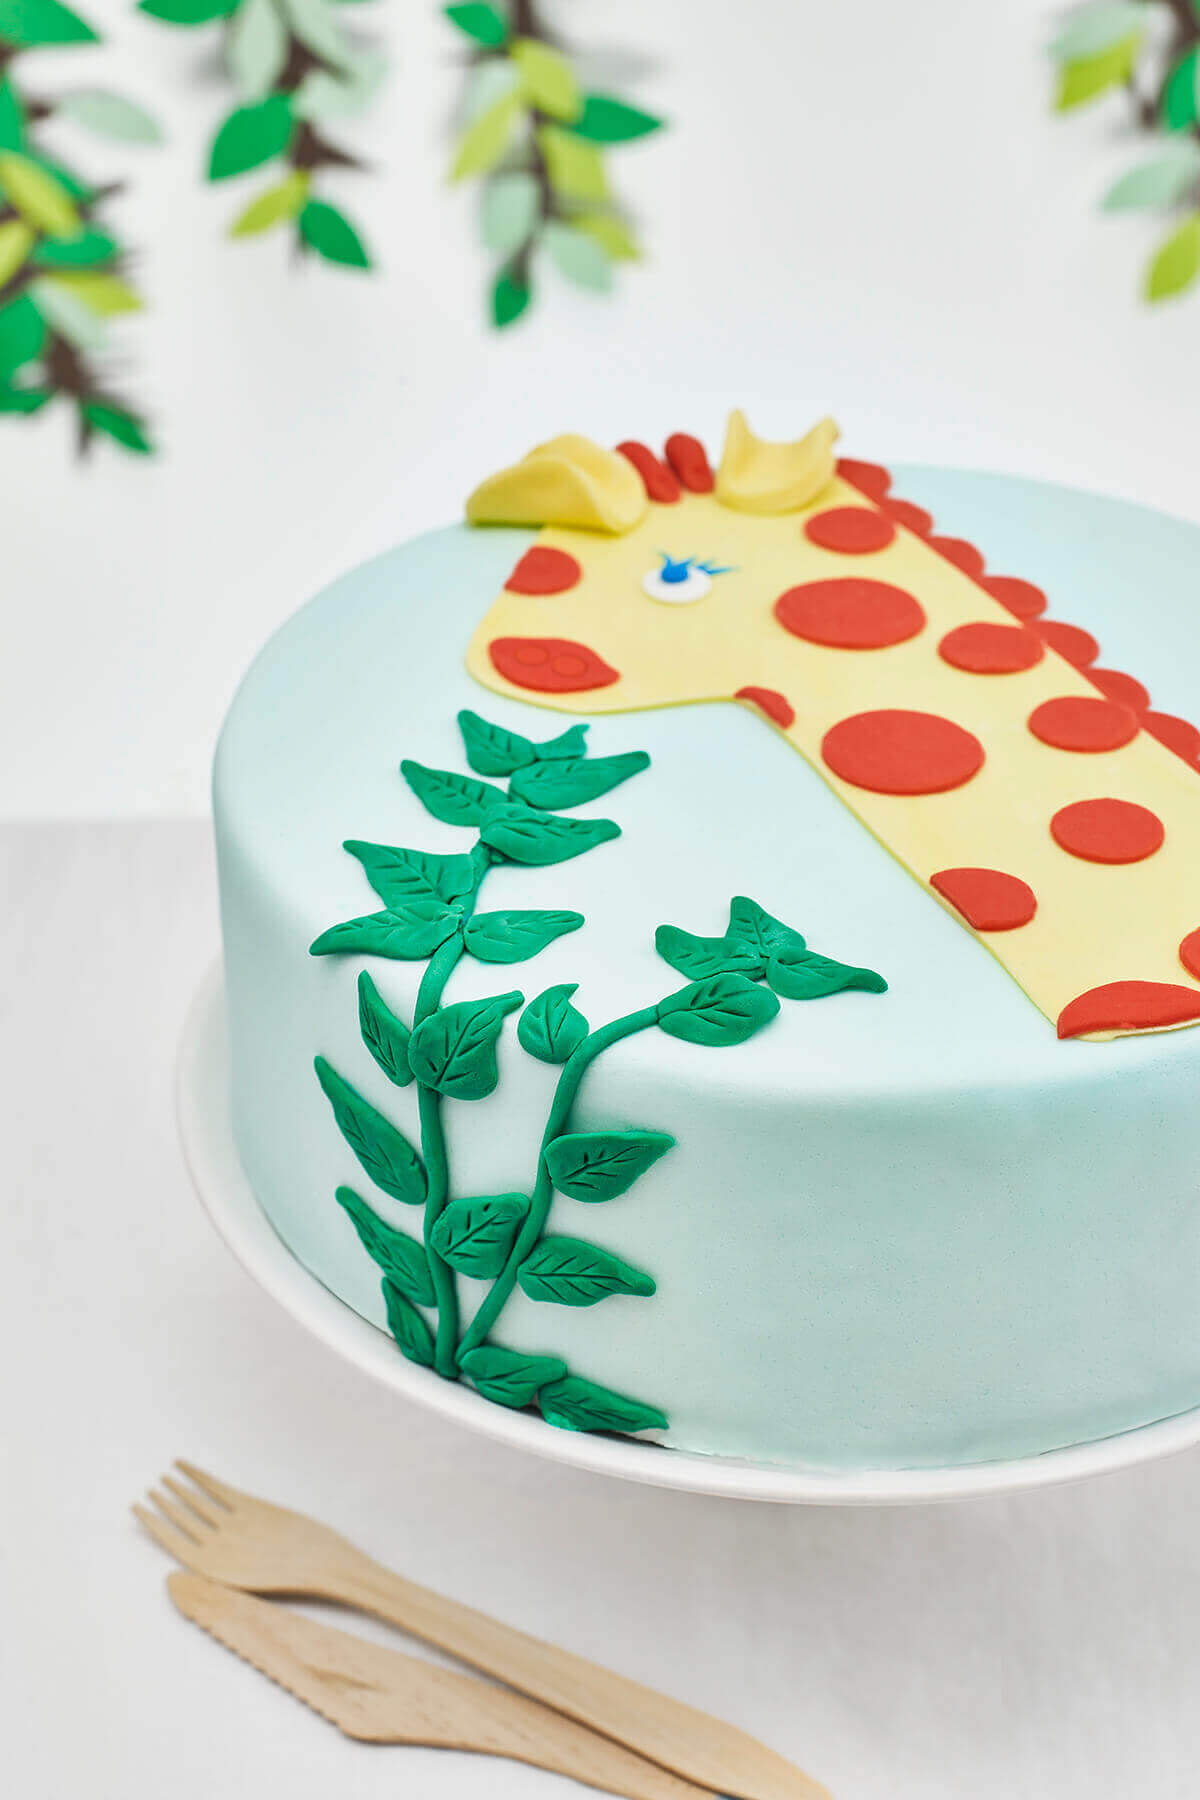 One Year Old Giraffe Themed DIY Birthday Cake Decorating ...